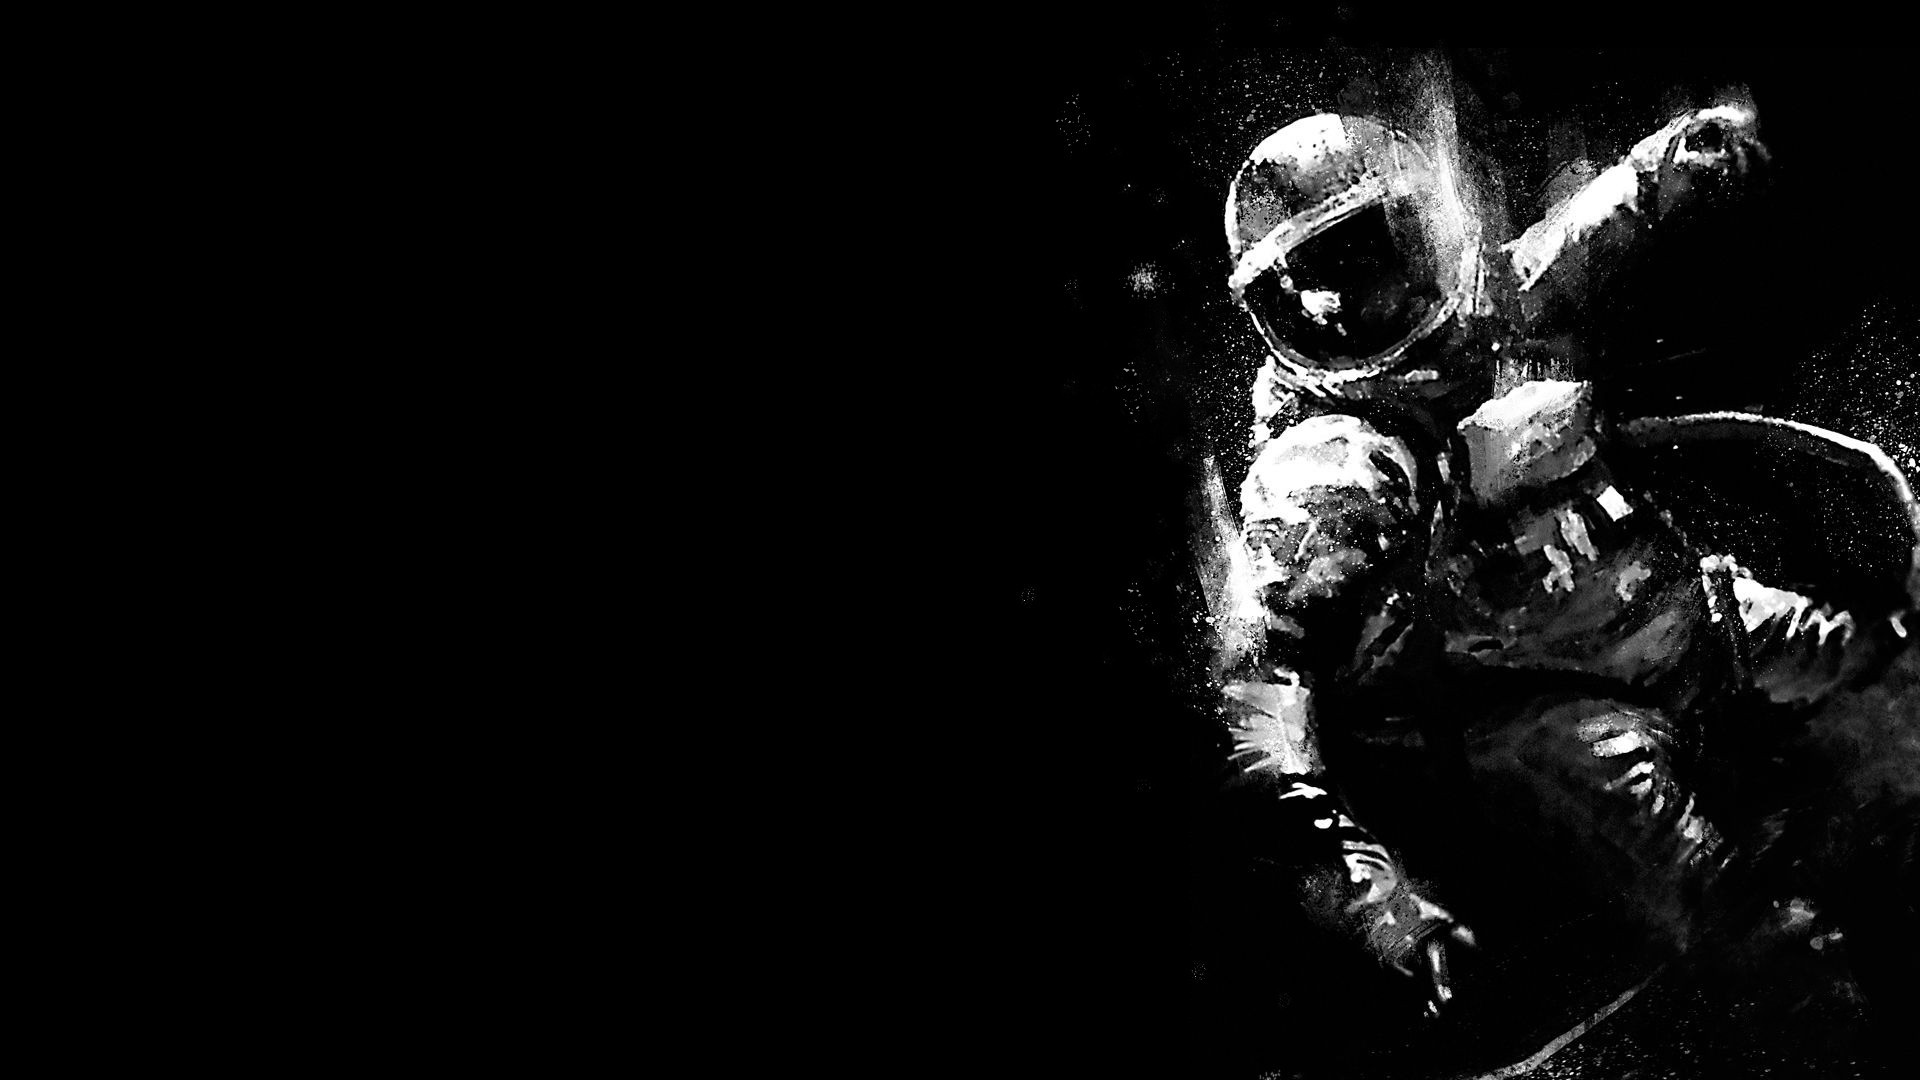 Falling Astronaut Iphone Wallpaper Astronaut Space Monochrome Wallpapers Hd Desktop And